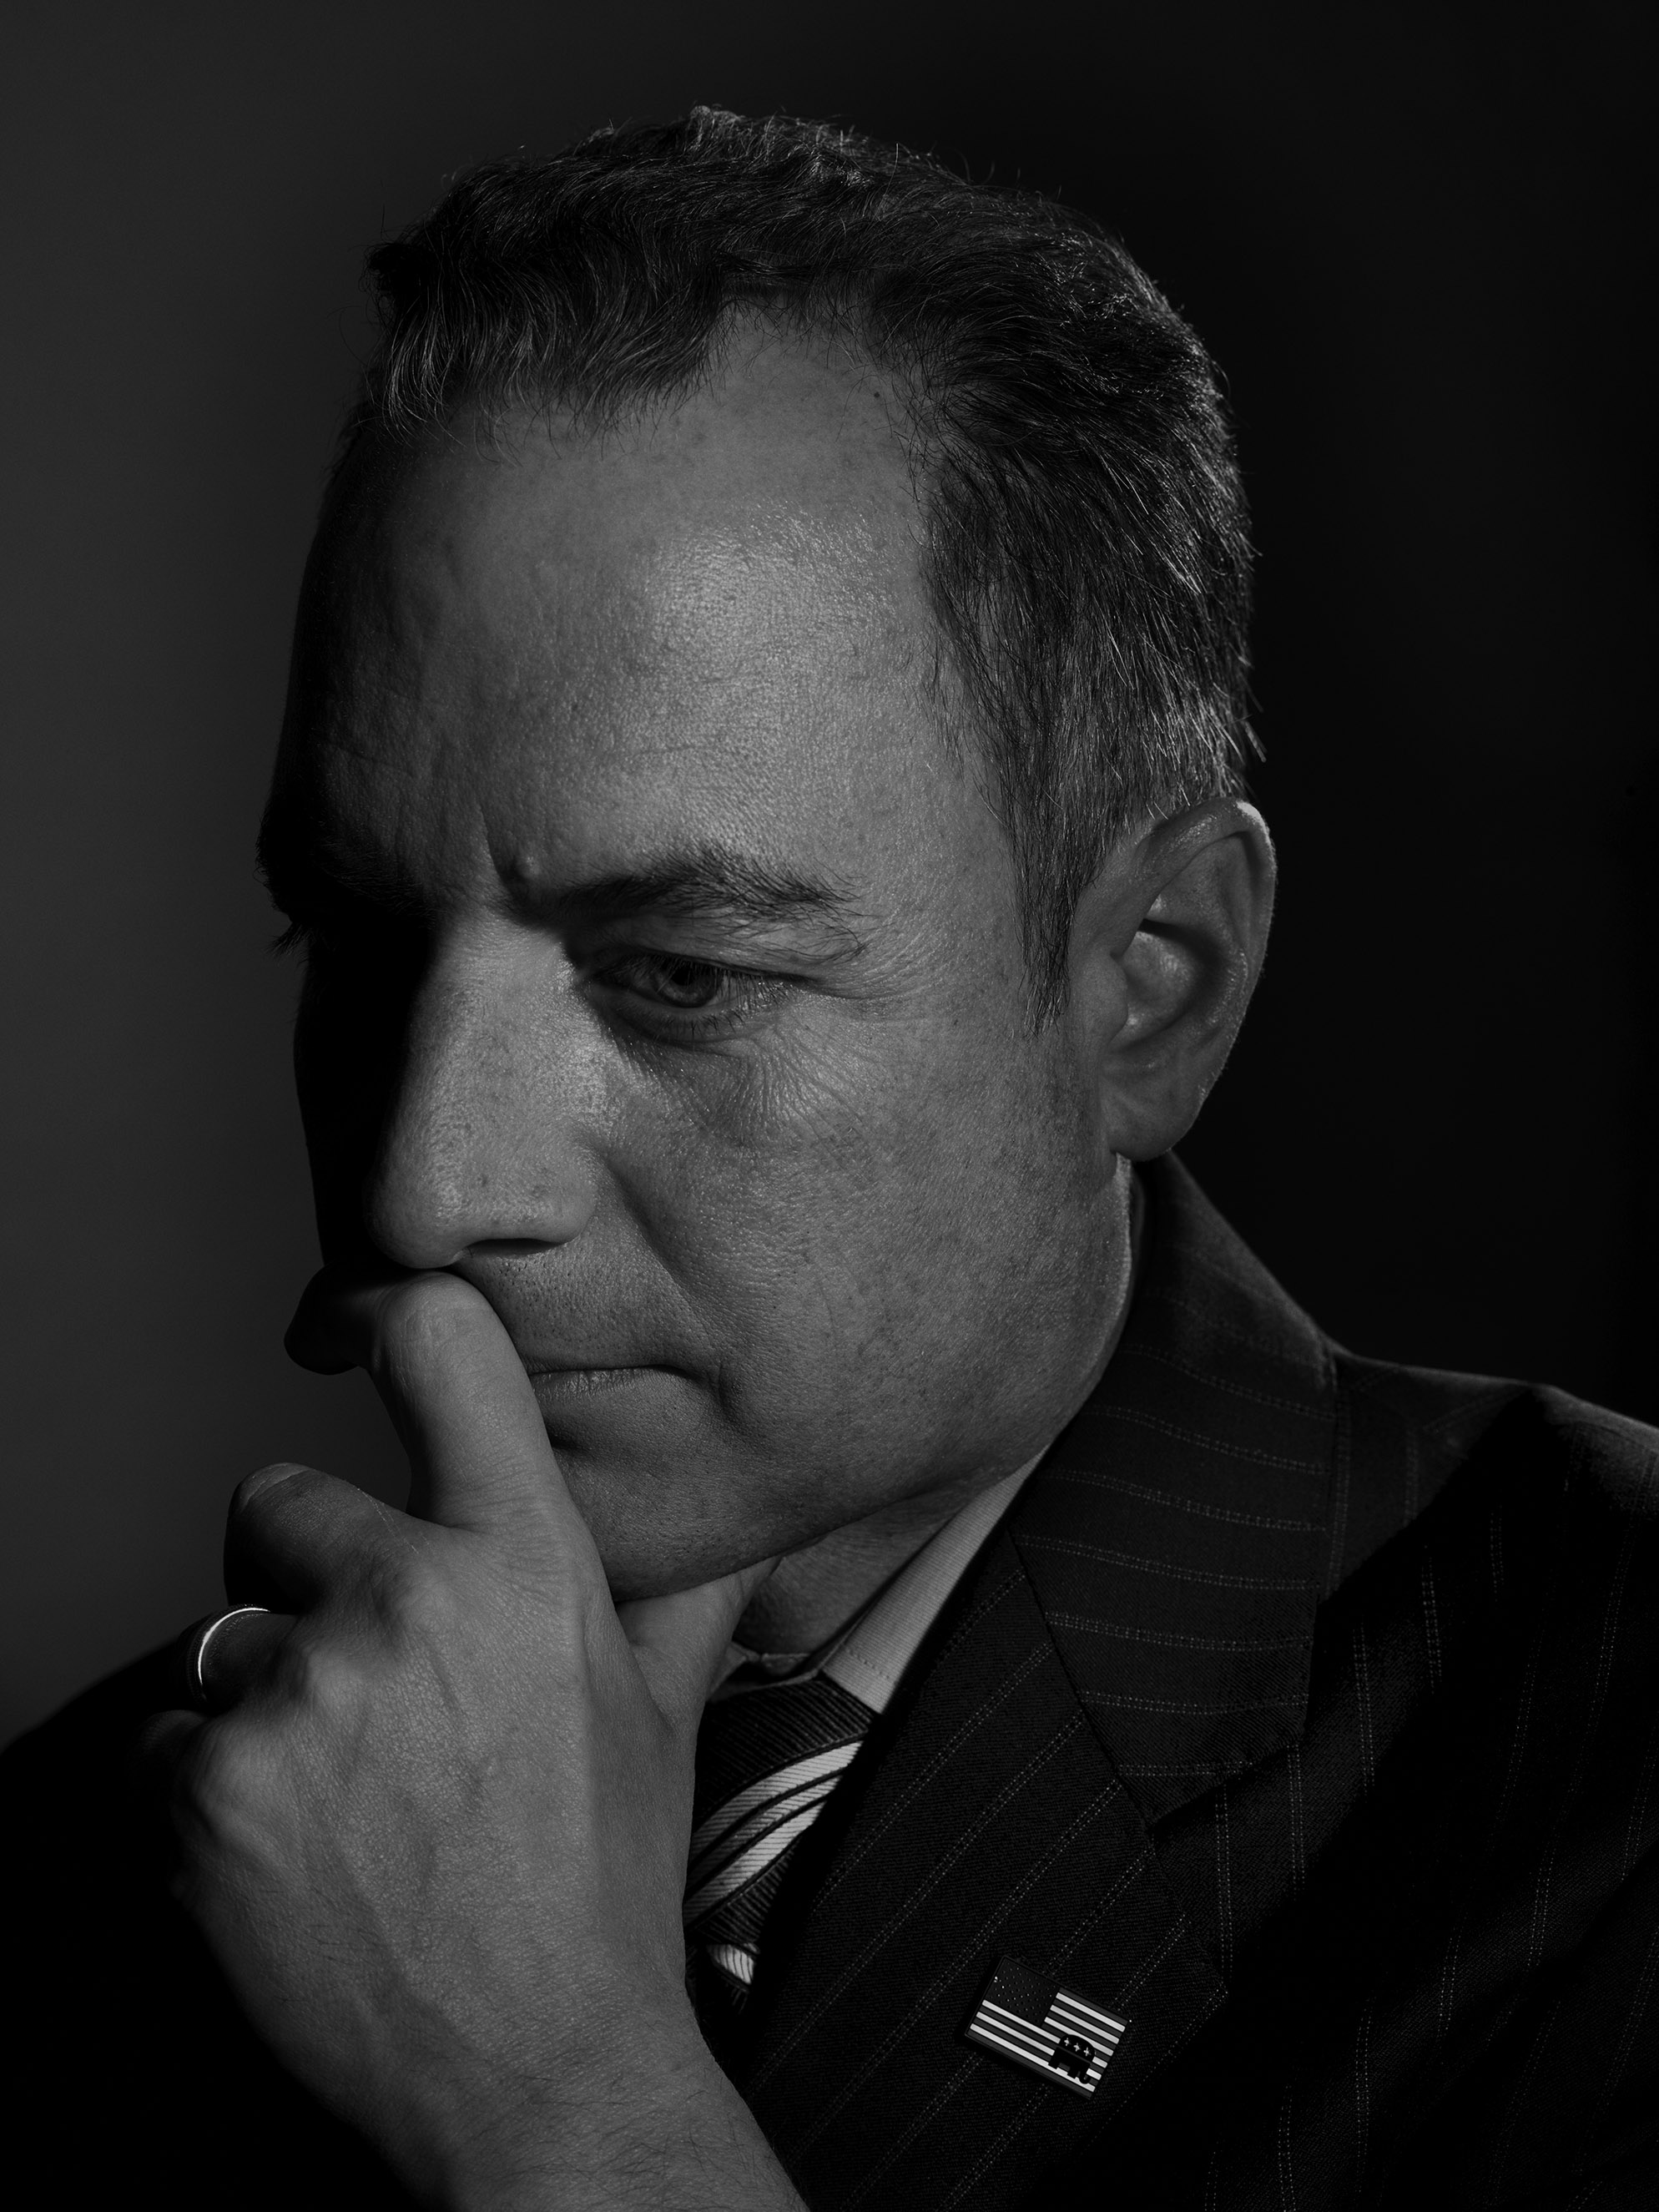 The Reconciler                               After serving as Republican chair during the chaotic campaign, Reince Priebus will become Trump's first White House chief of staff, acting as a bridge to the Washington establishment.                               From                                 See Portraits of Donald Trump's Most Trusted Advisers